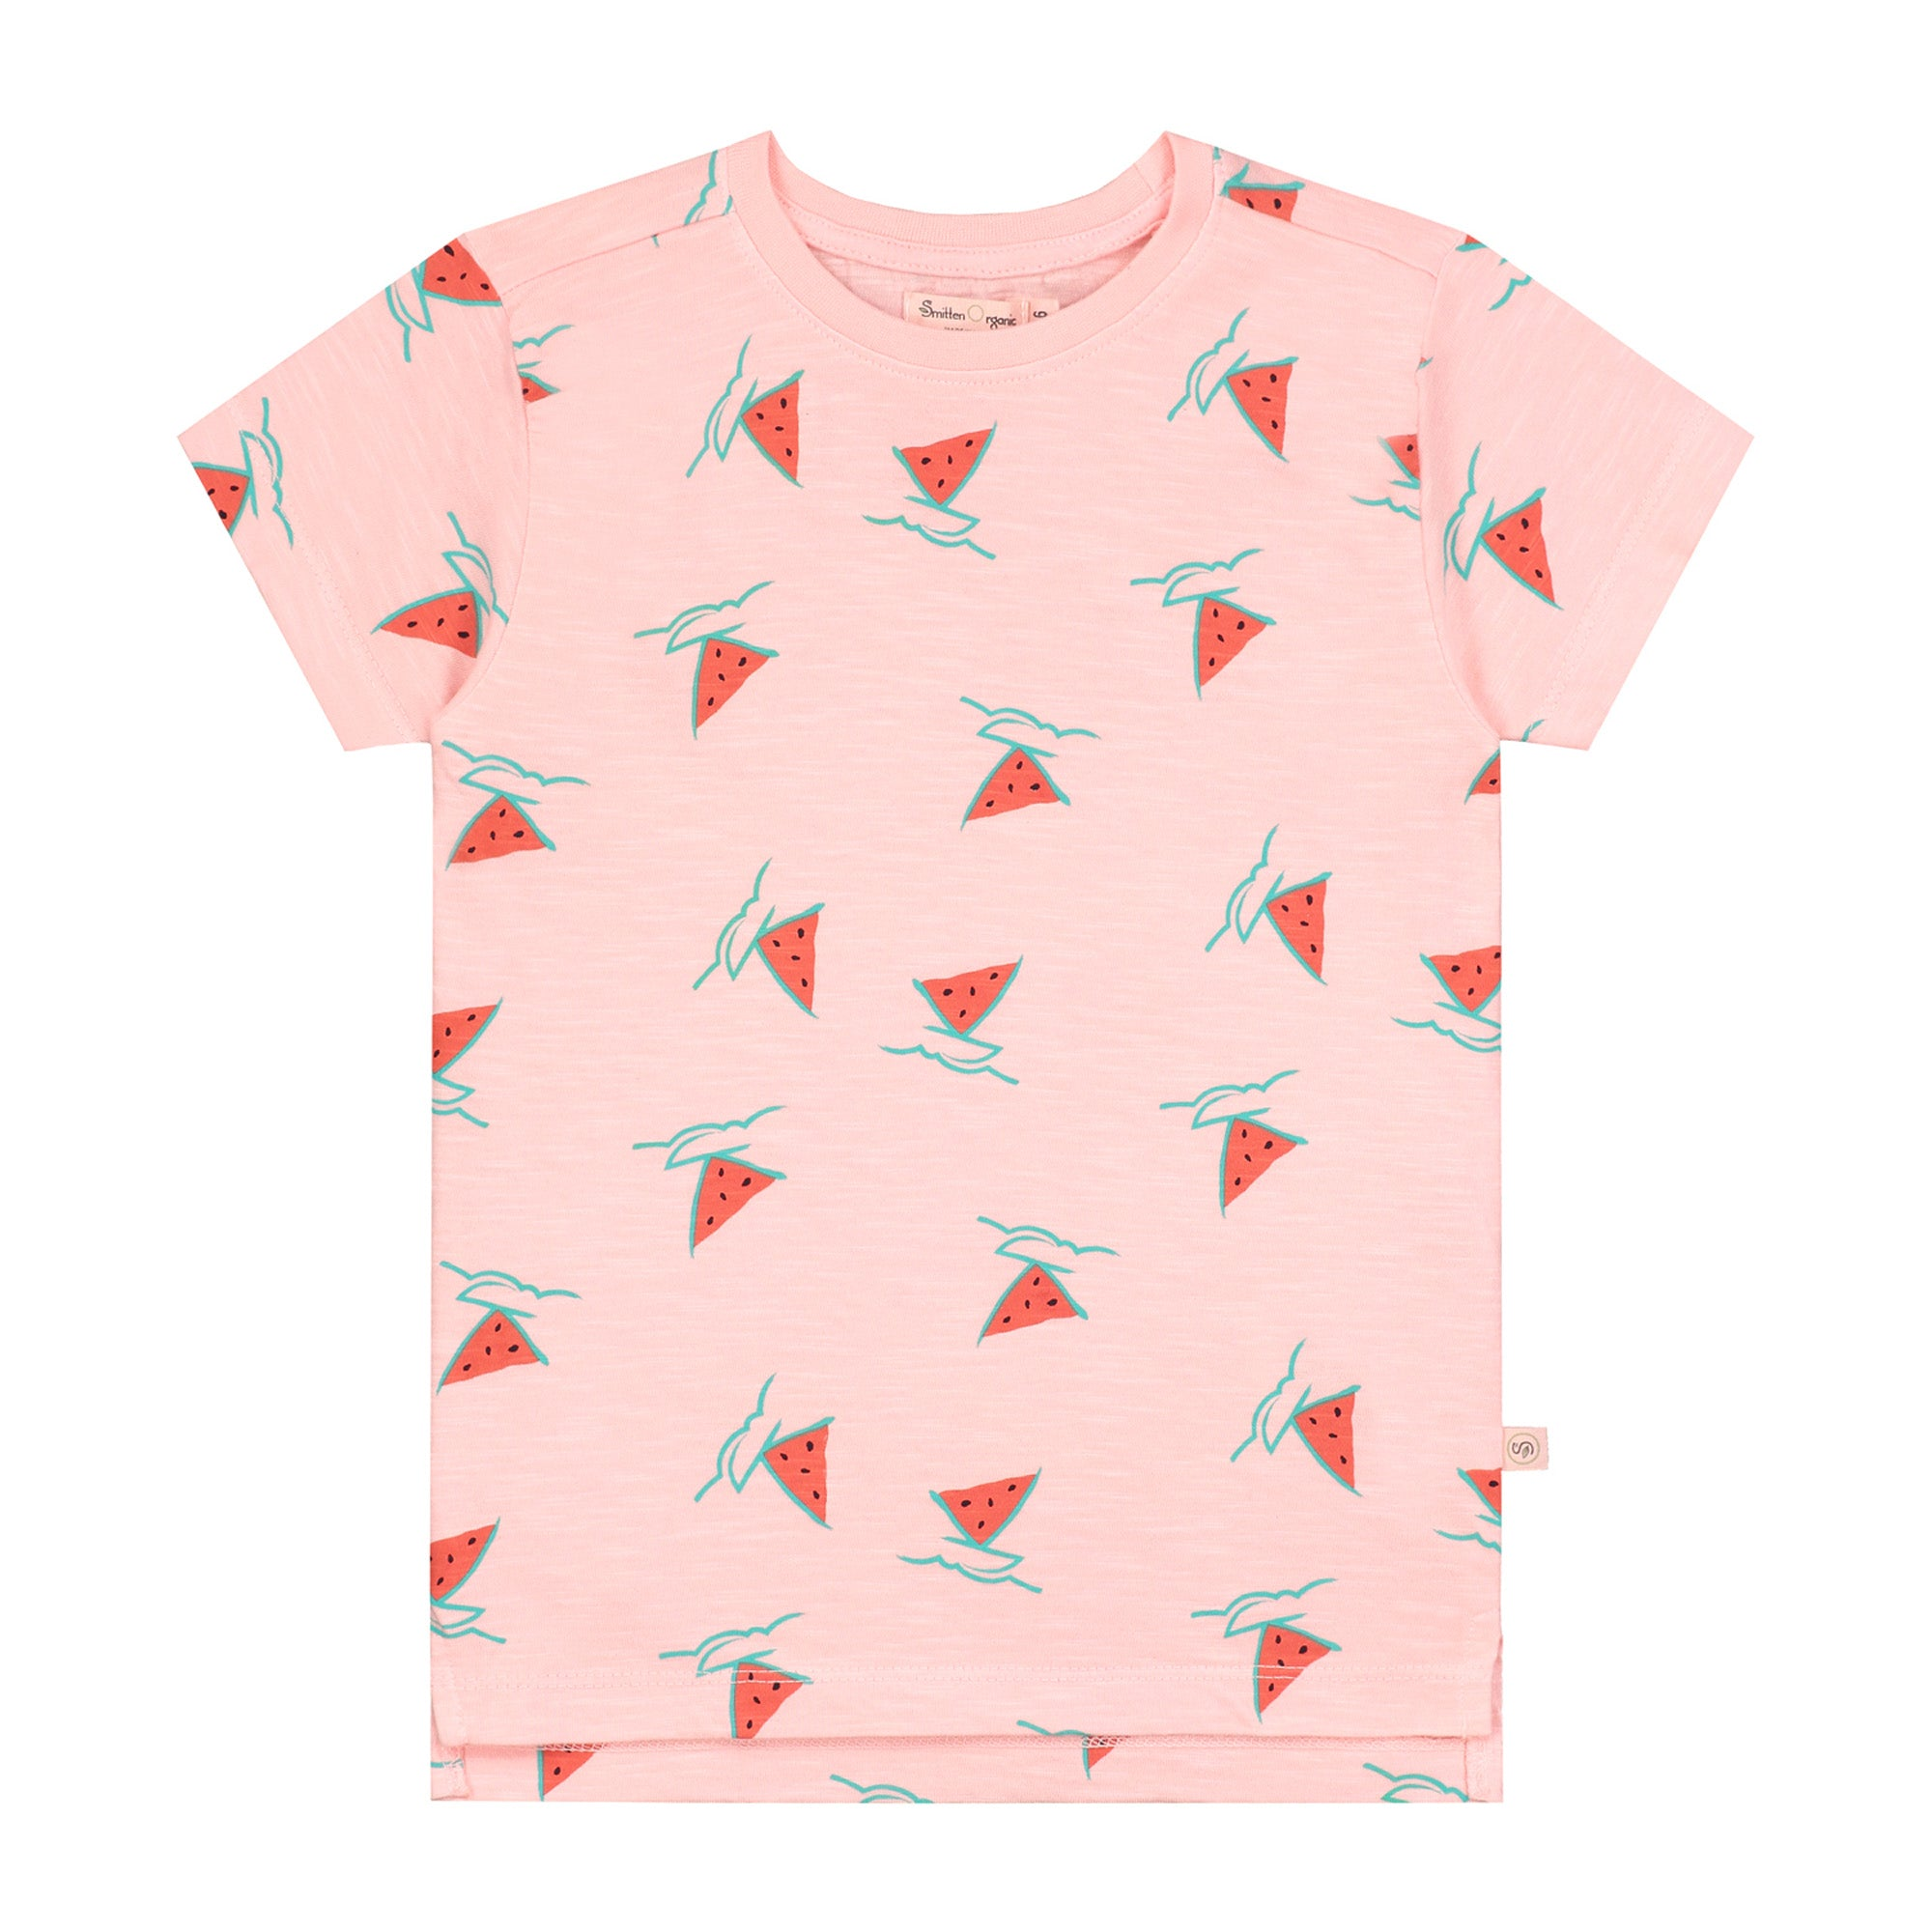 Watermelon Boat Girls T-shirt